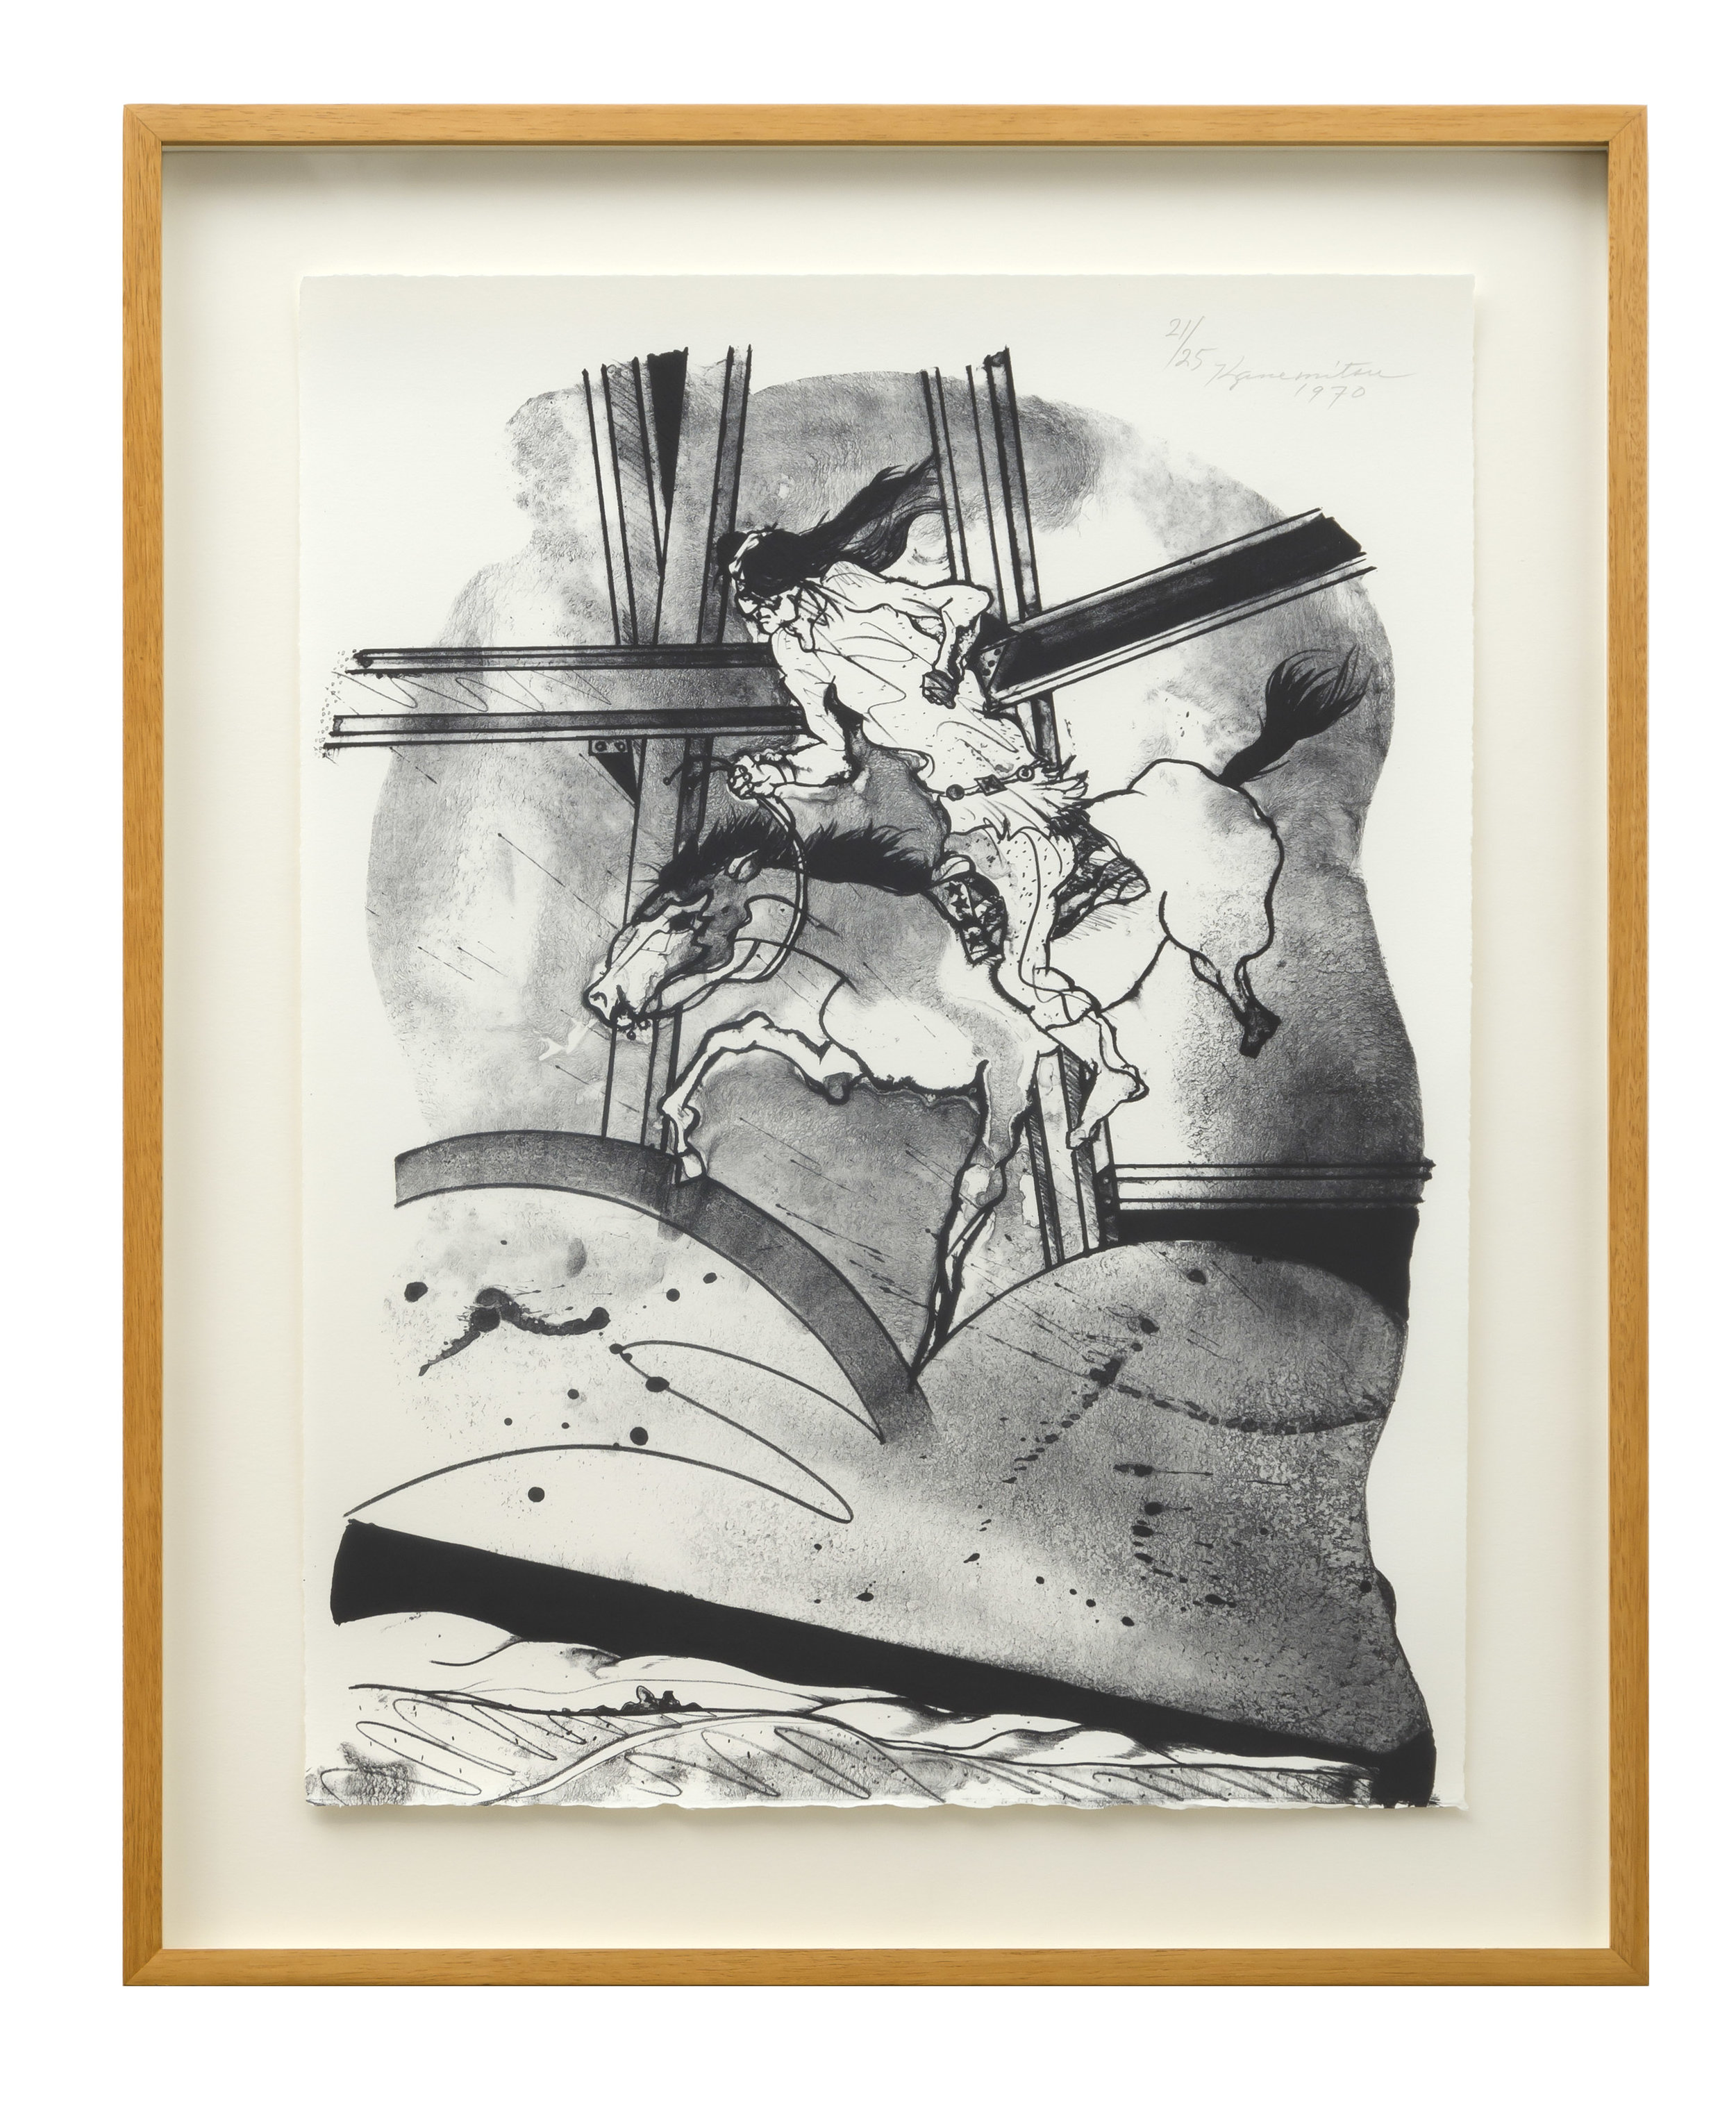 Metamorphosis L.A. I , 1970 lithograph 20 x 15 inches; 50.8 x 38.1 centimeters